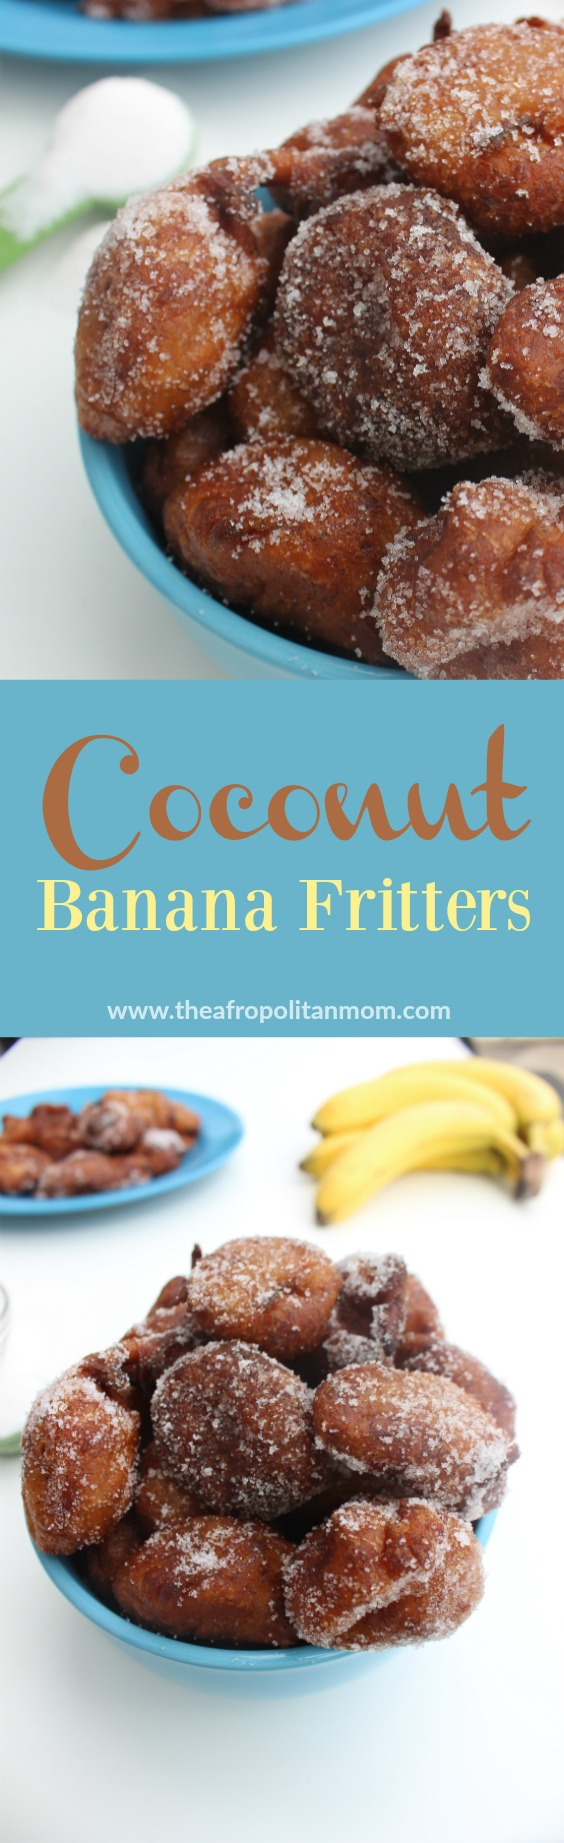 Crisp on the the outside and tender on the inside, these banana fritters are loaded with a nice combination of sweet banana and coconut